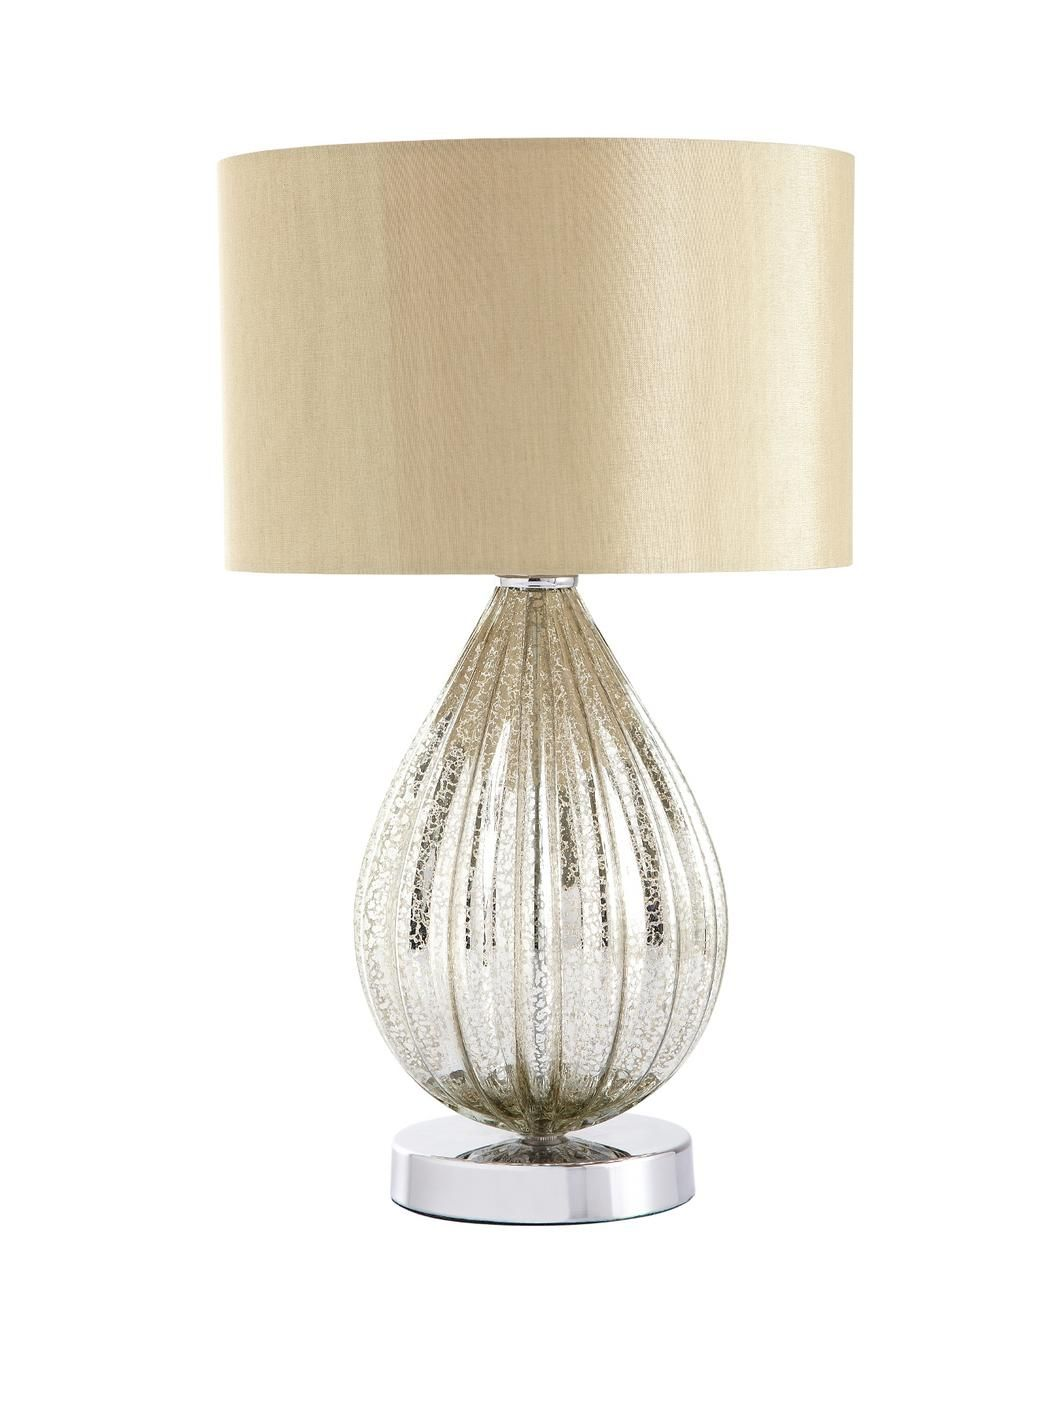 Camellia Table Lamp Want!